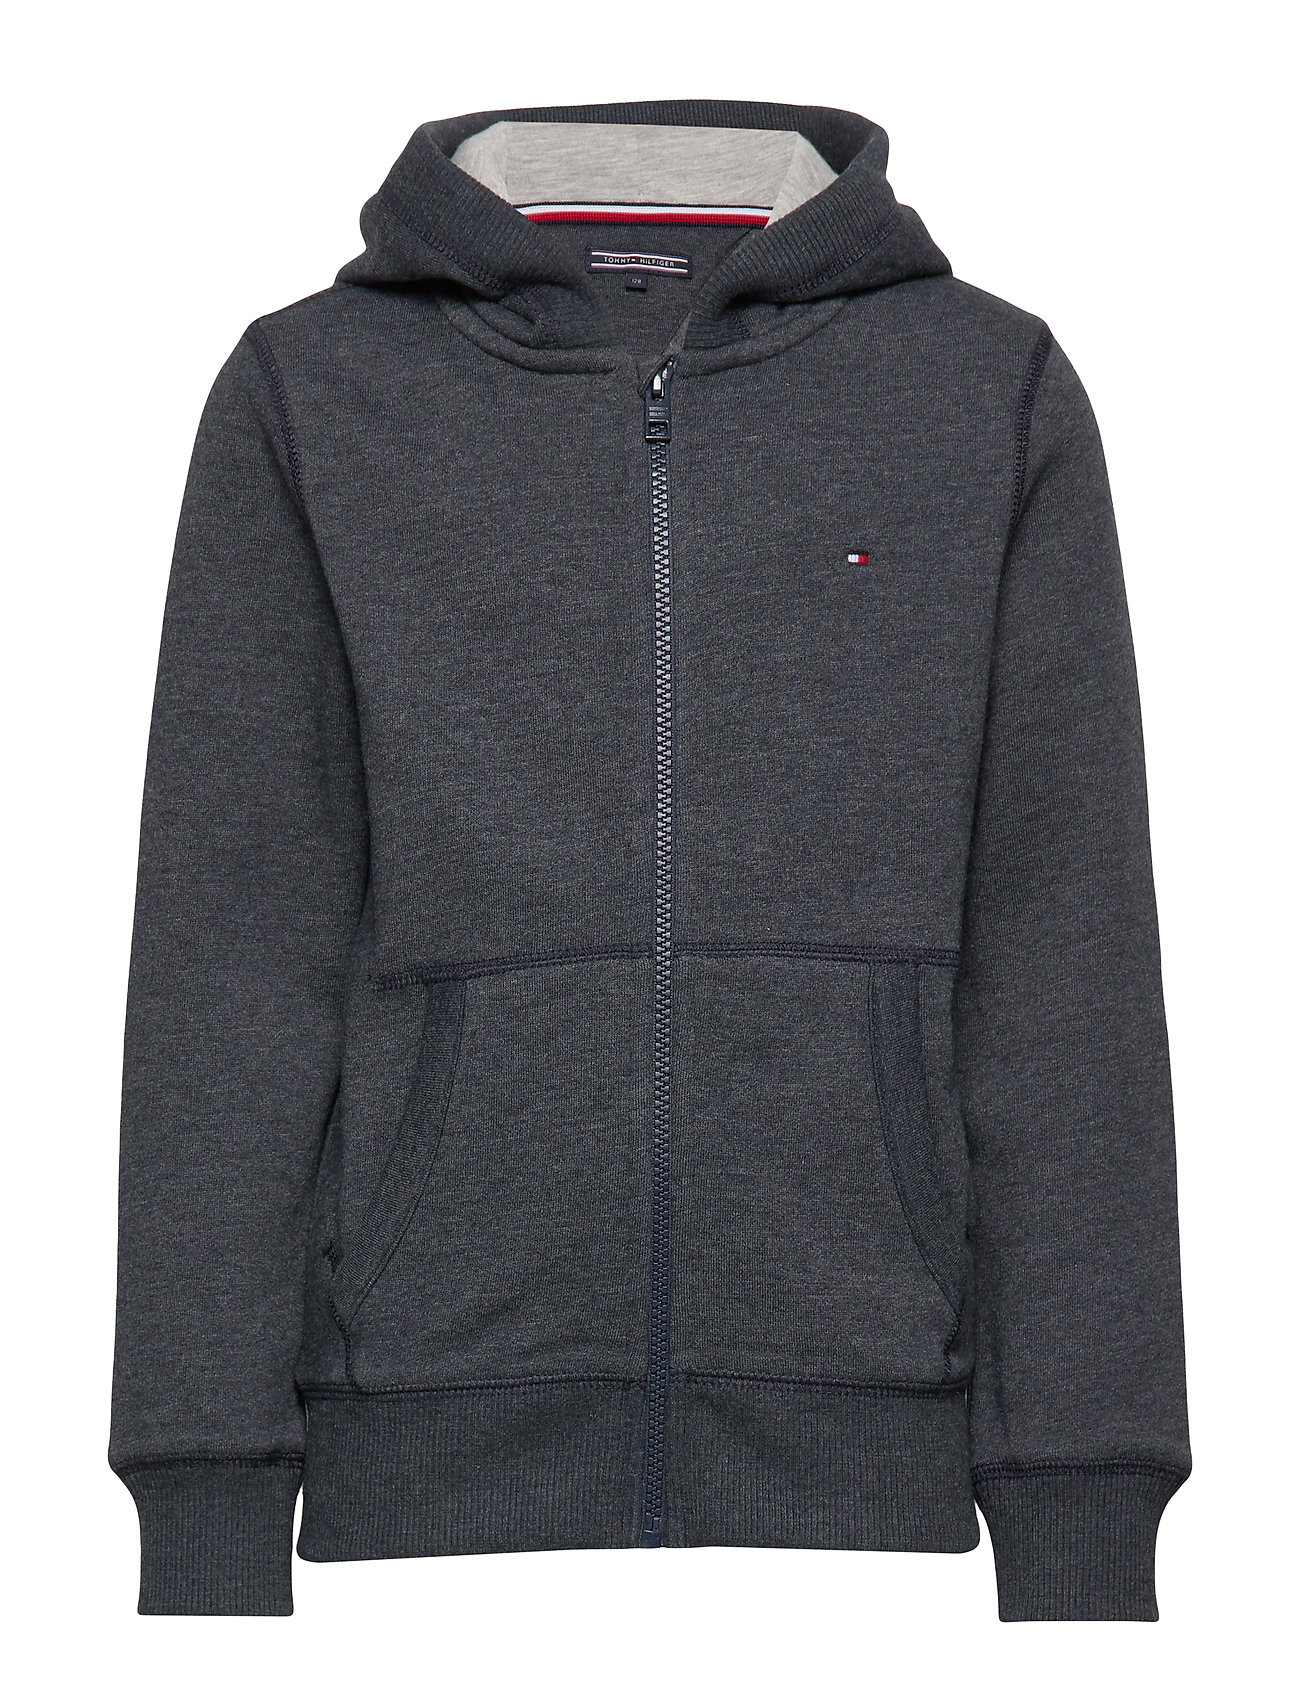 Tommy Hilfiger BOYS BASIC ZIP HOODI - SKY CAPTAIN